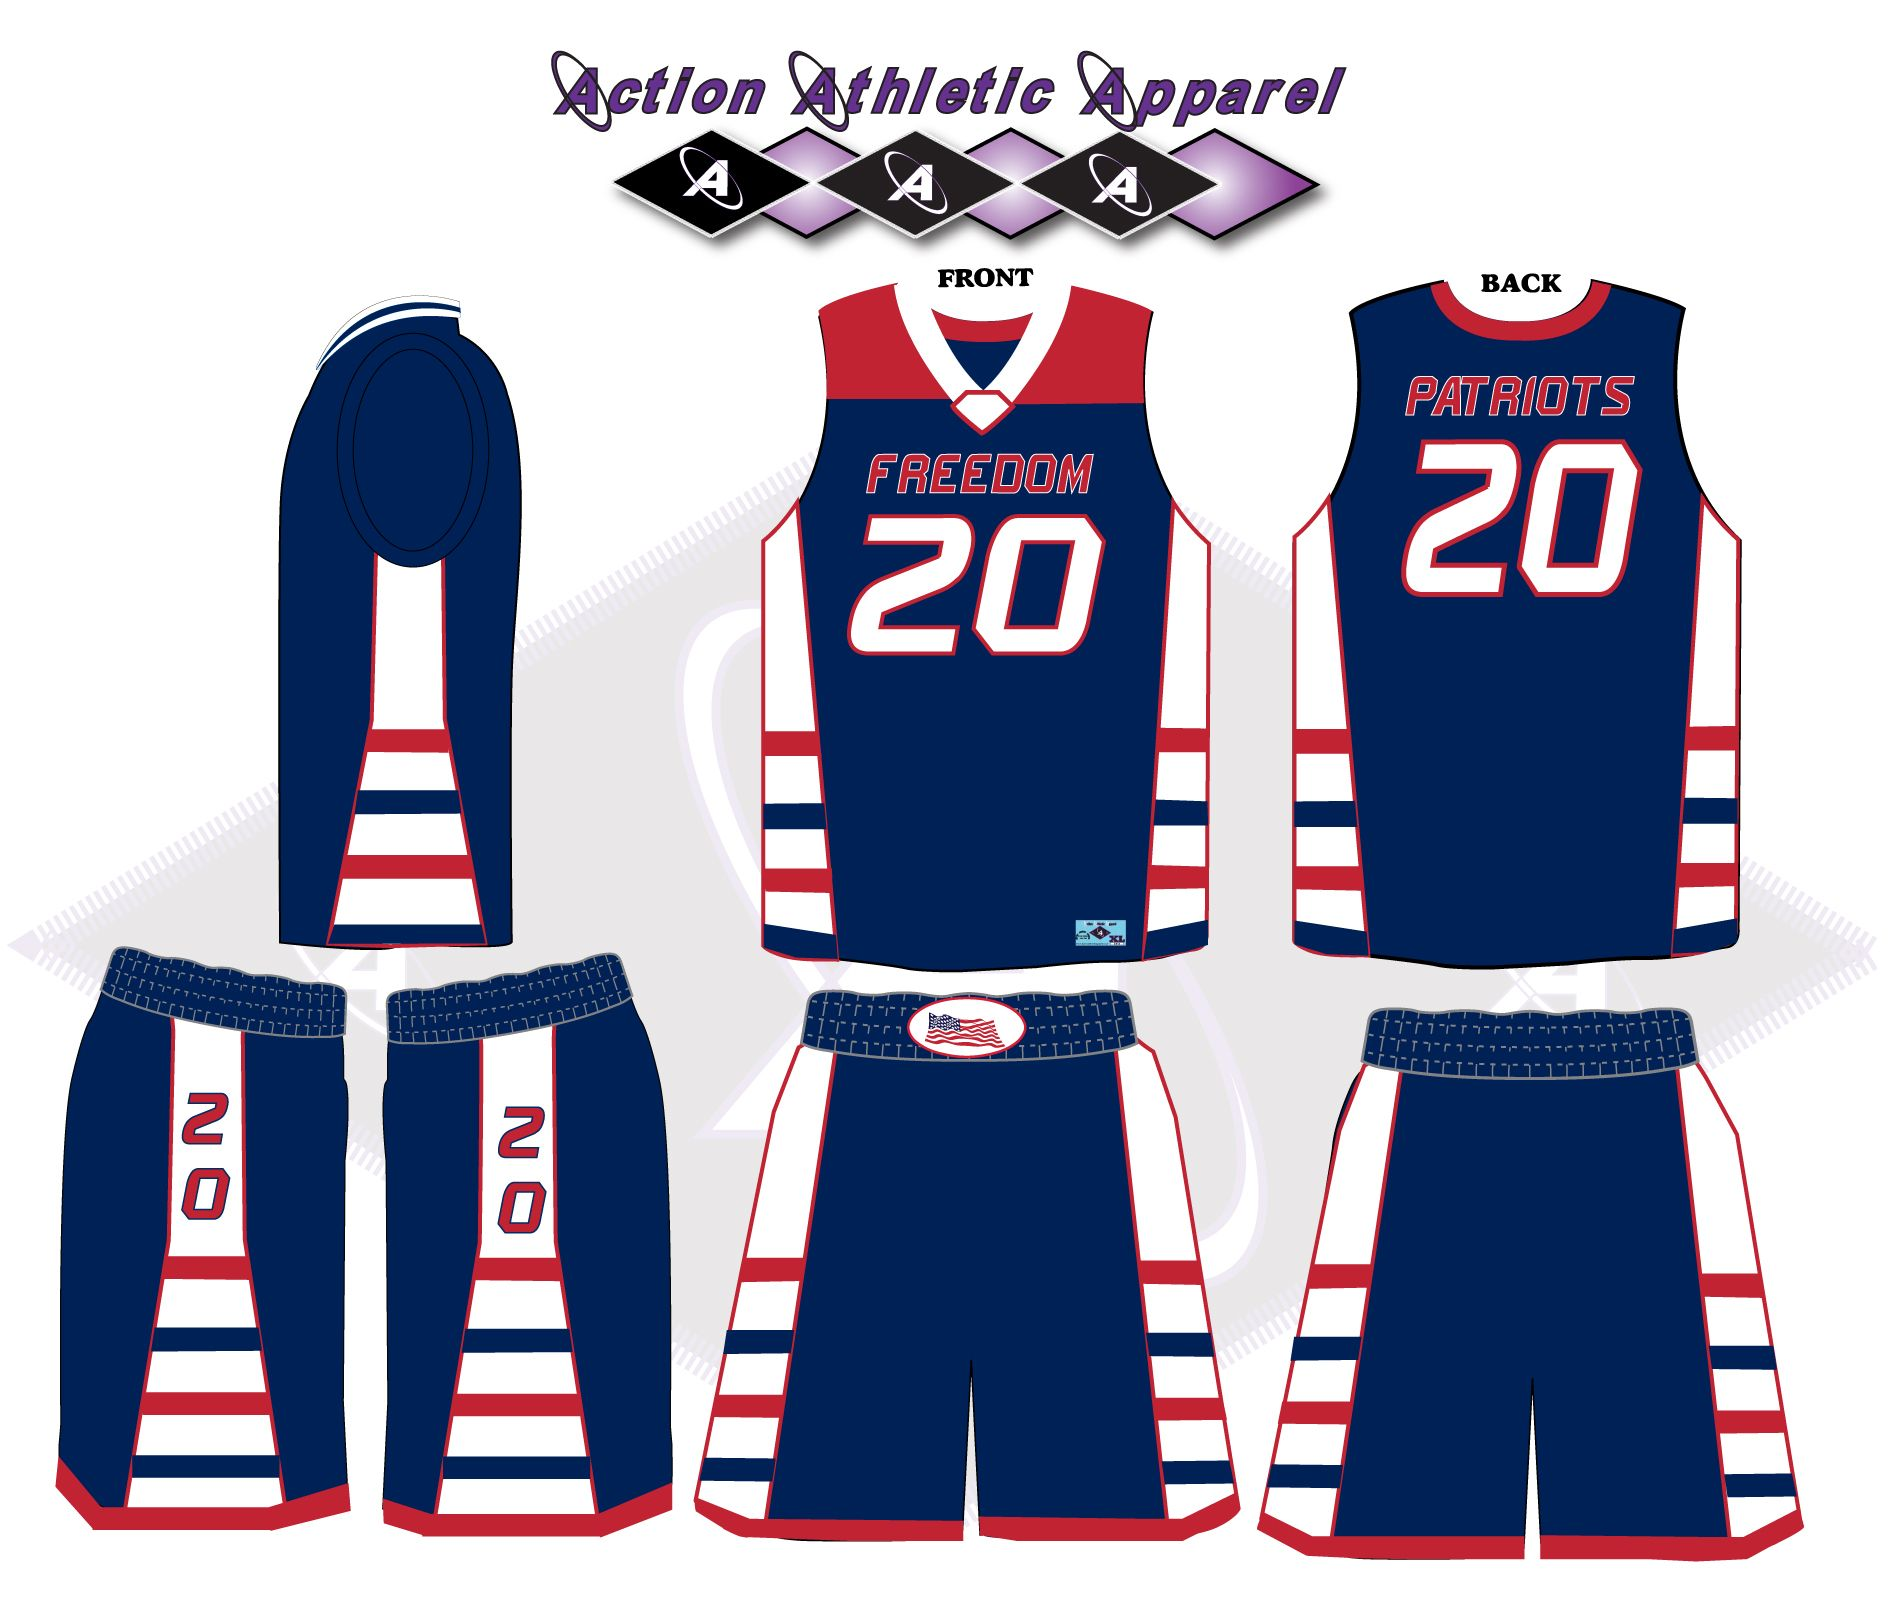 7ba08ff32 Nice Clean Design of a Road Full Dye Sublimated Uniform for a School Team